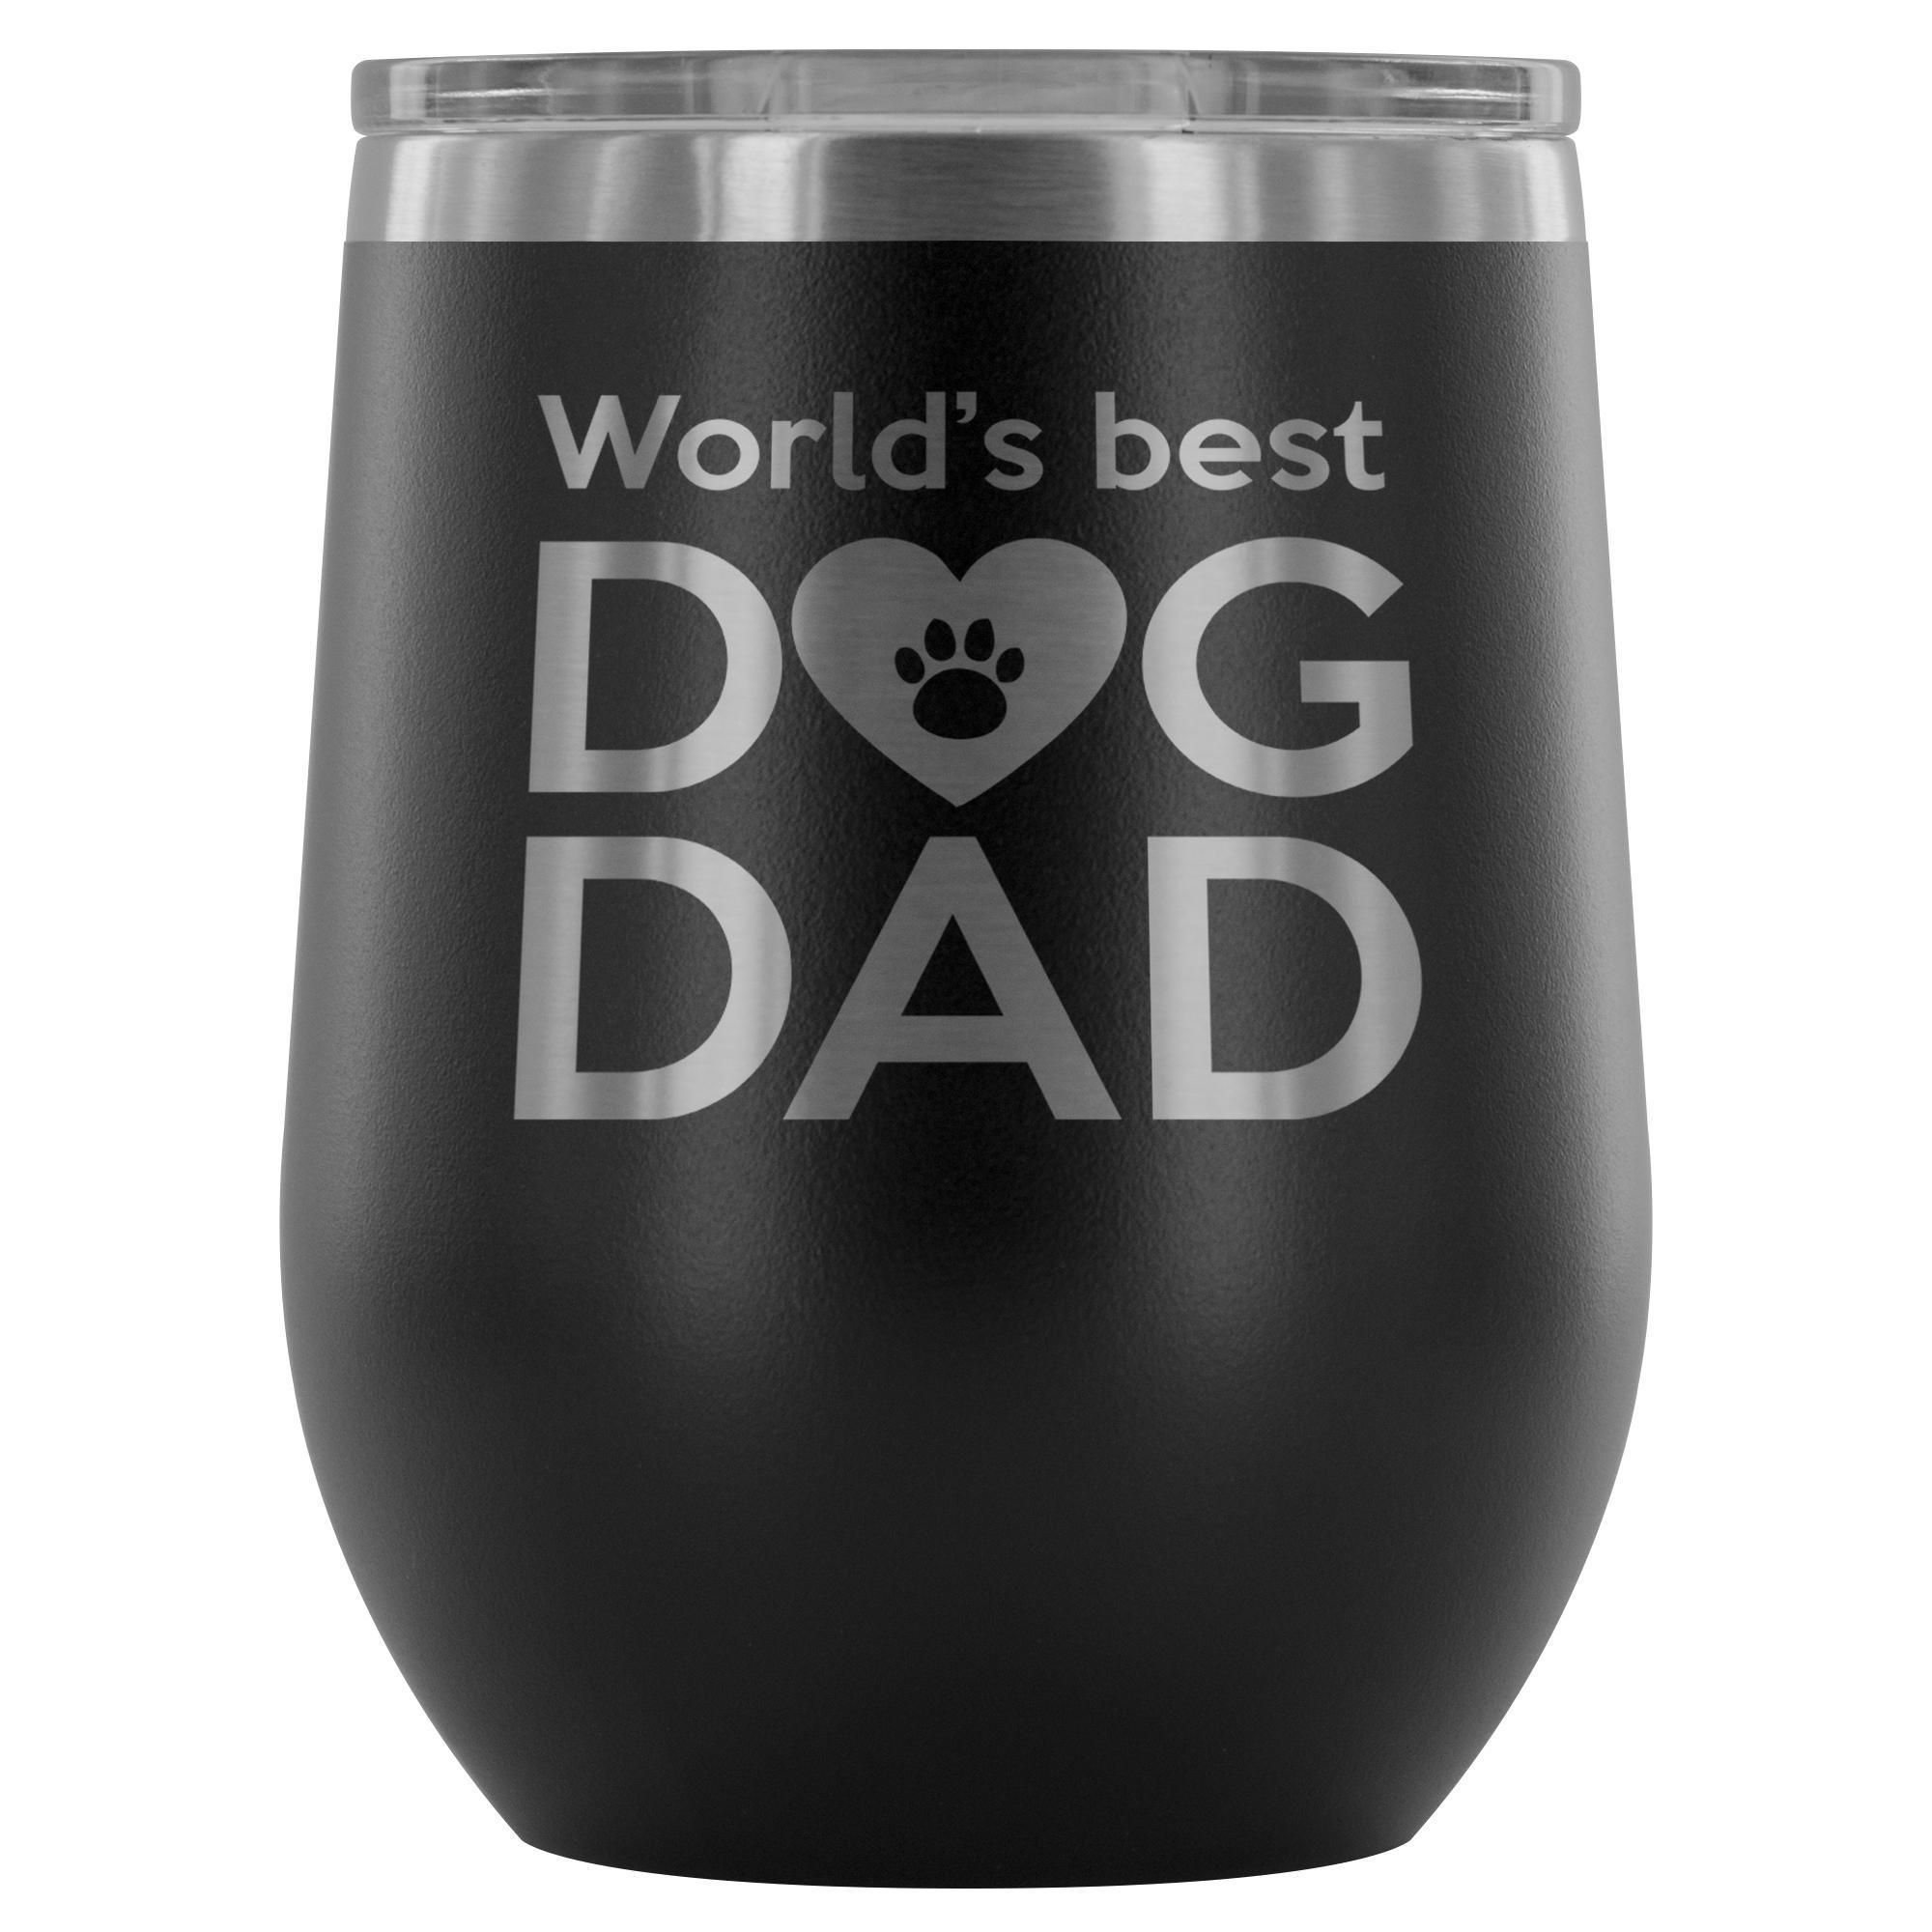 Dogs- World's best dog dad 12oz Wine Tumbler-Wine Tumbler-I love Veterinary